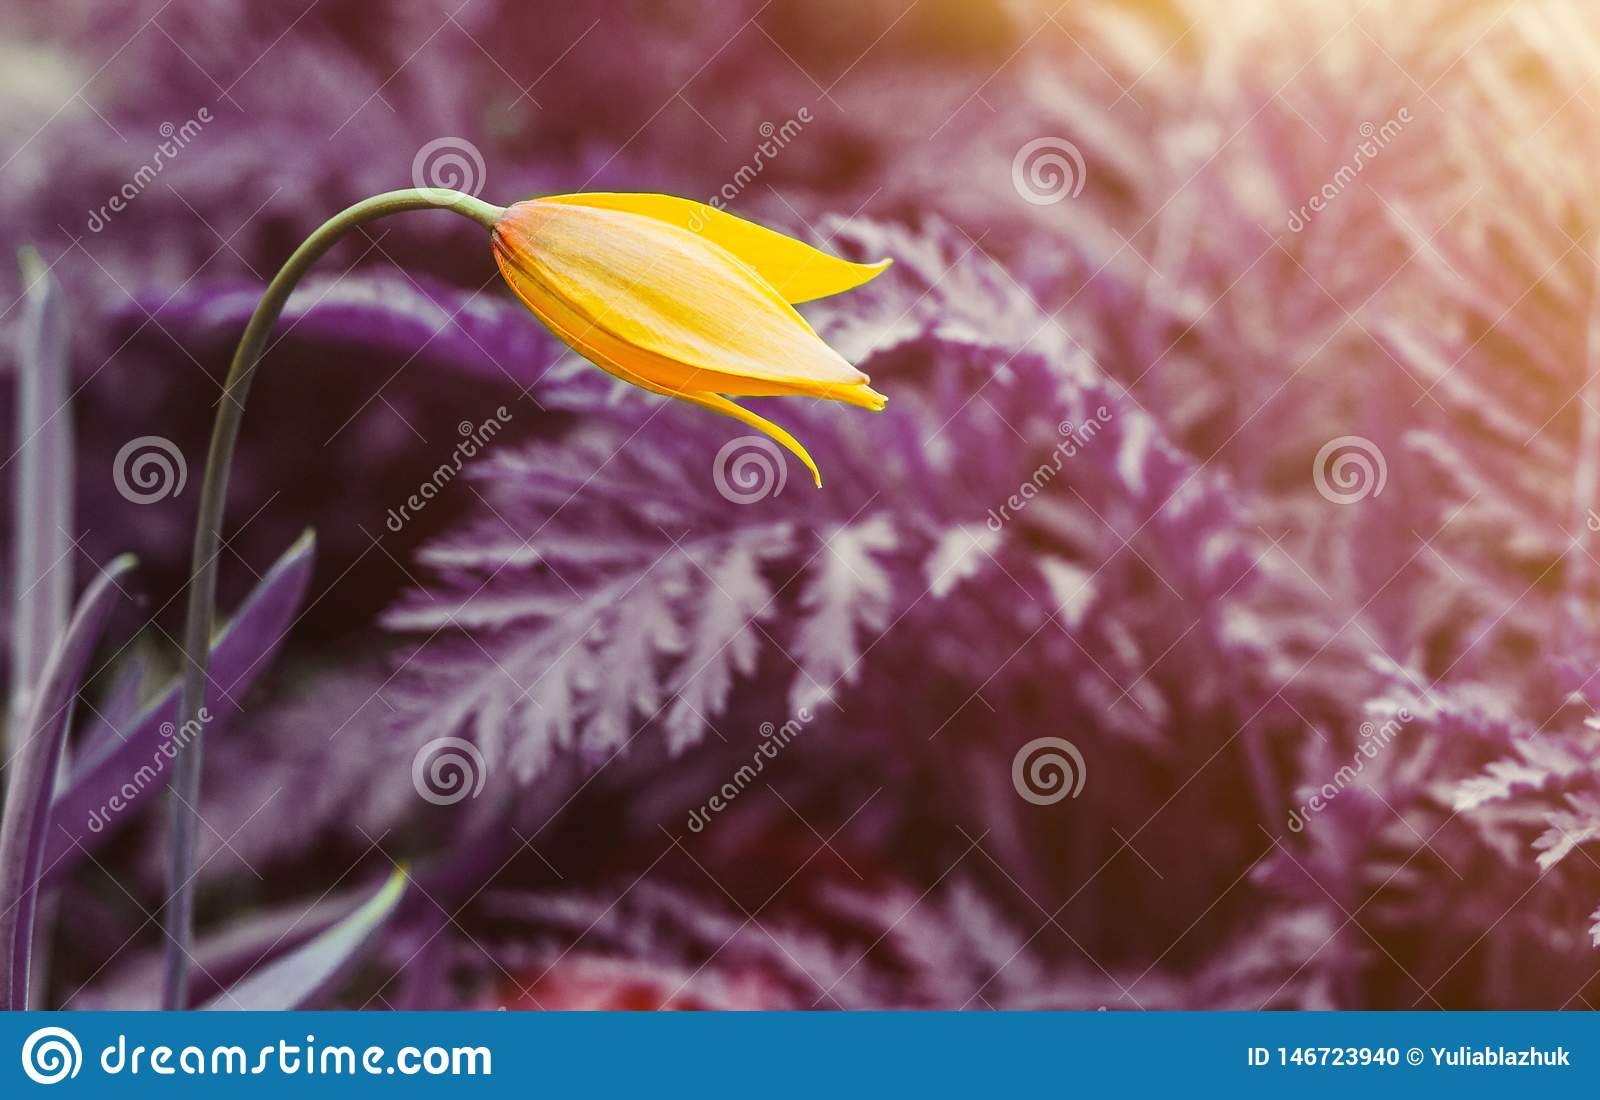 One yellow wild tulip against surreal purple background